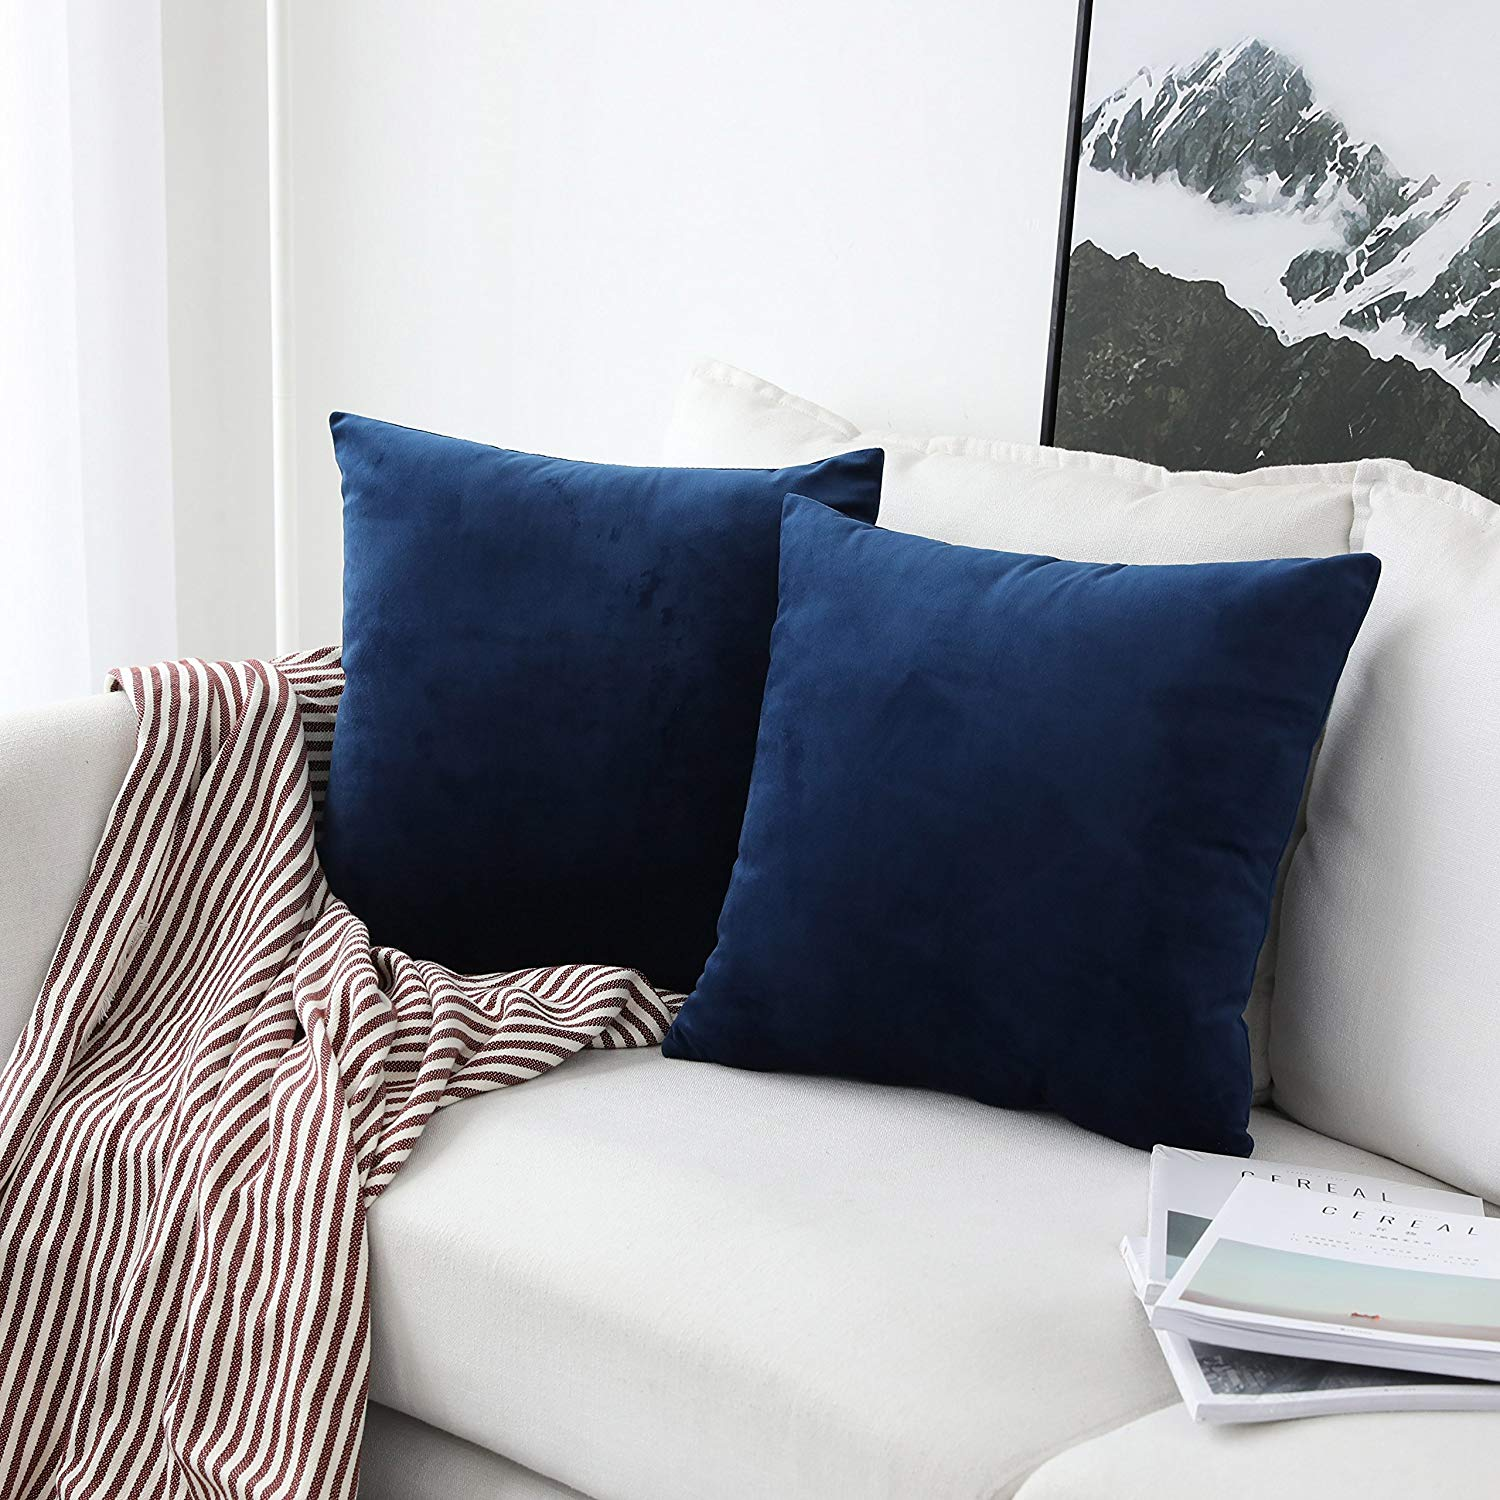 UGASA Soft Velvet Solid Square Decorative Cushion Cover Pillowcase with Hidden Zipper, 2 Packs, 18x18 inch, Navy Peony Blue